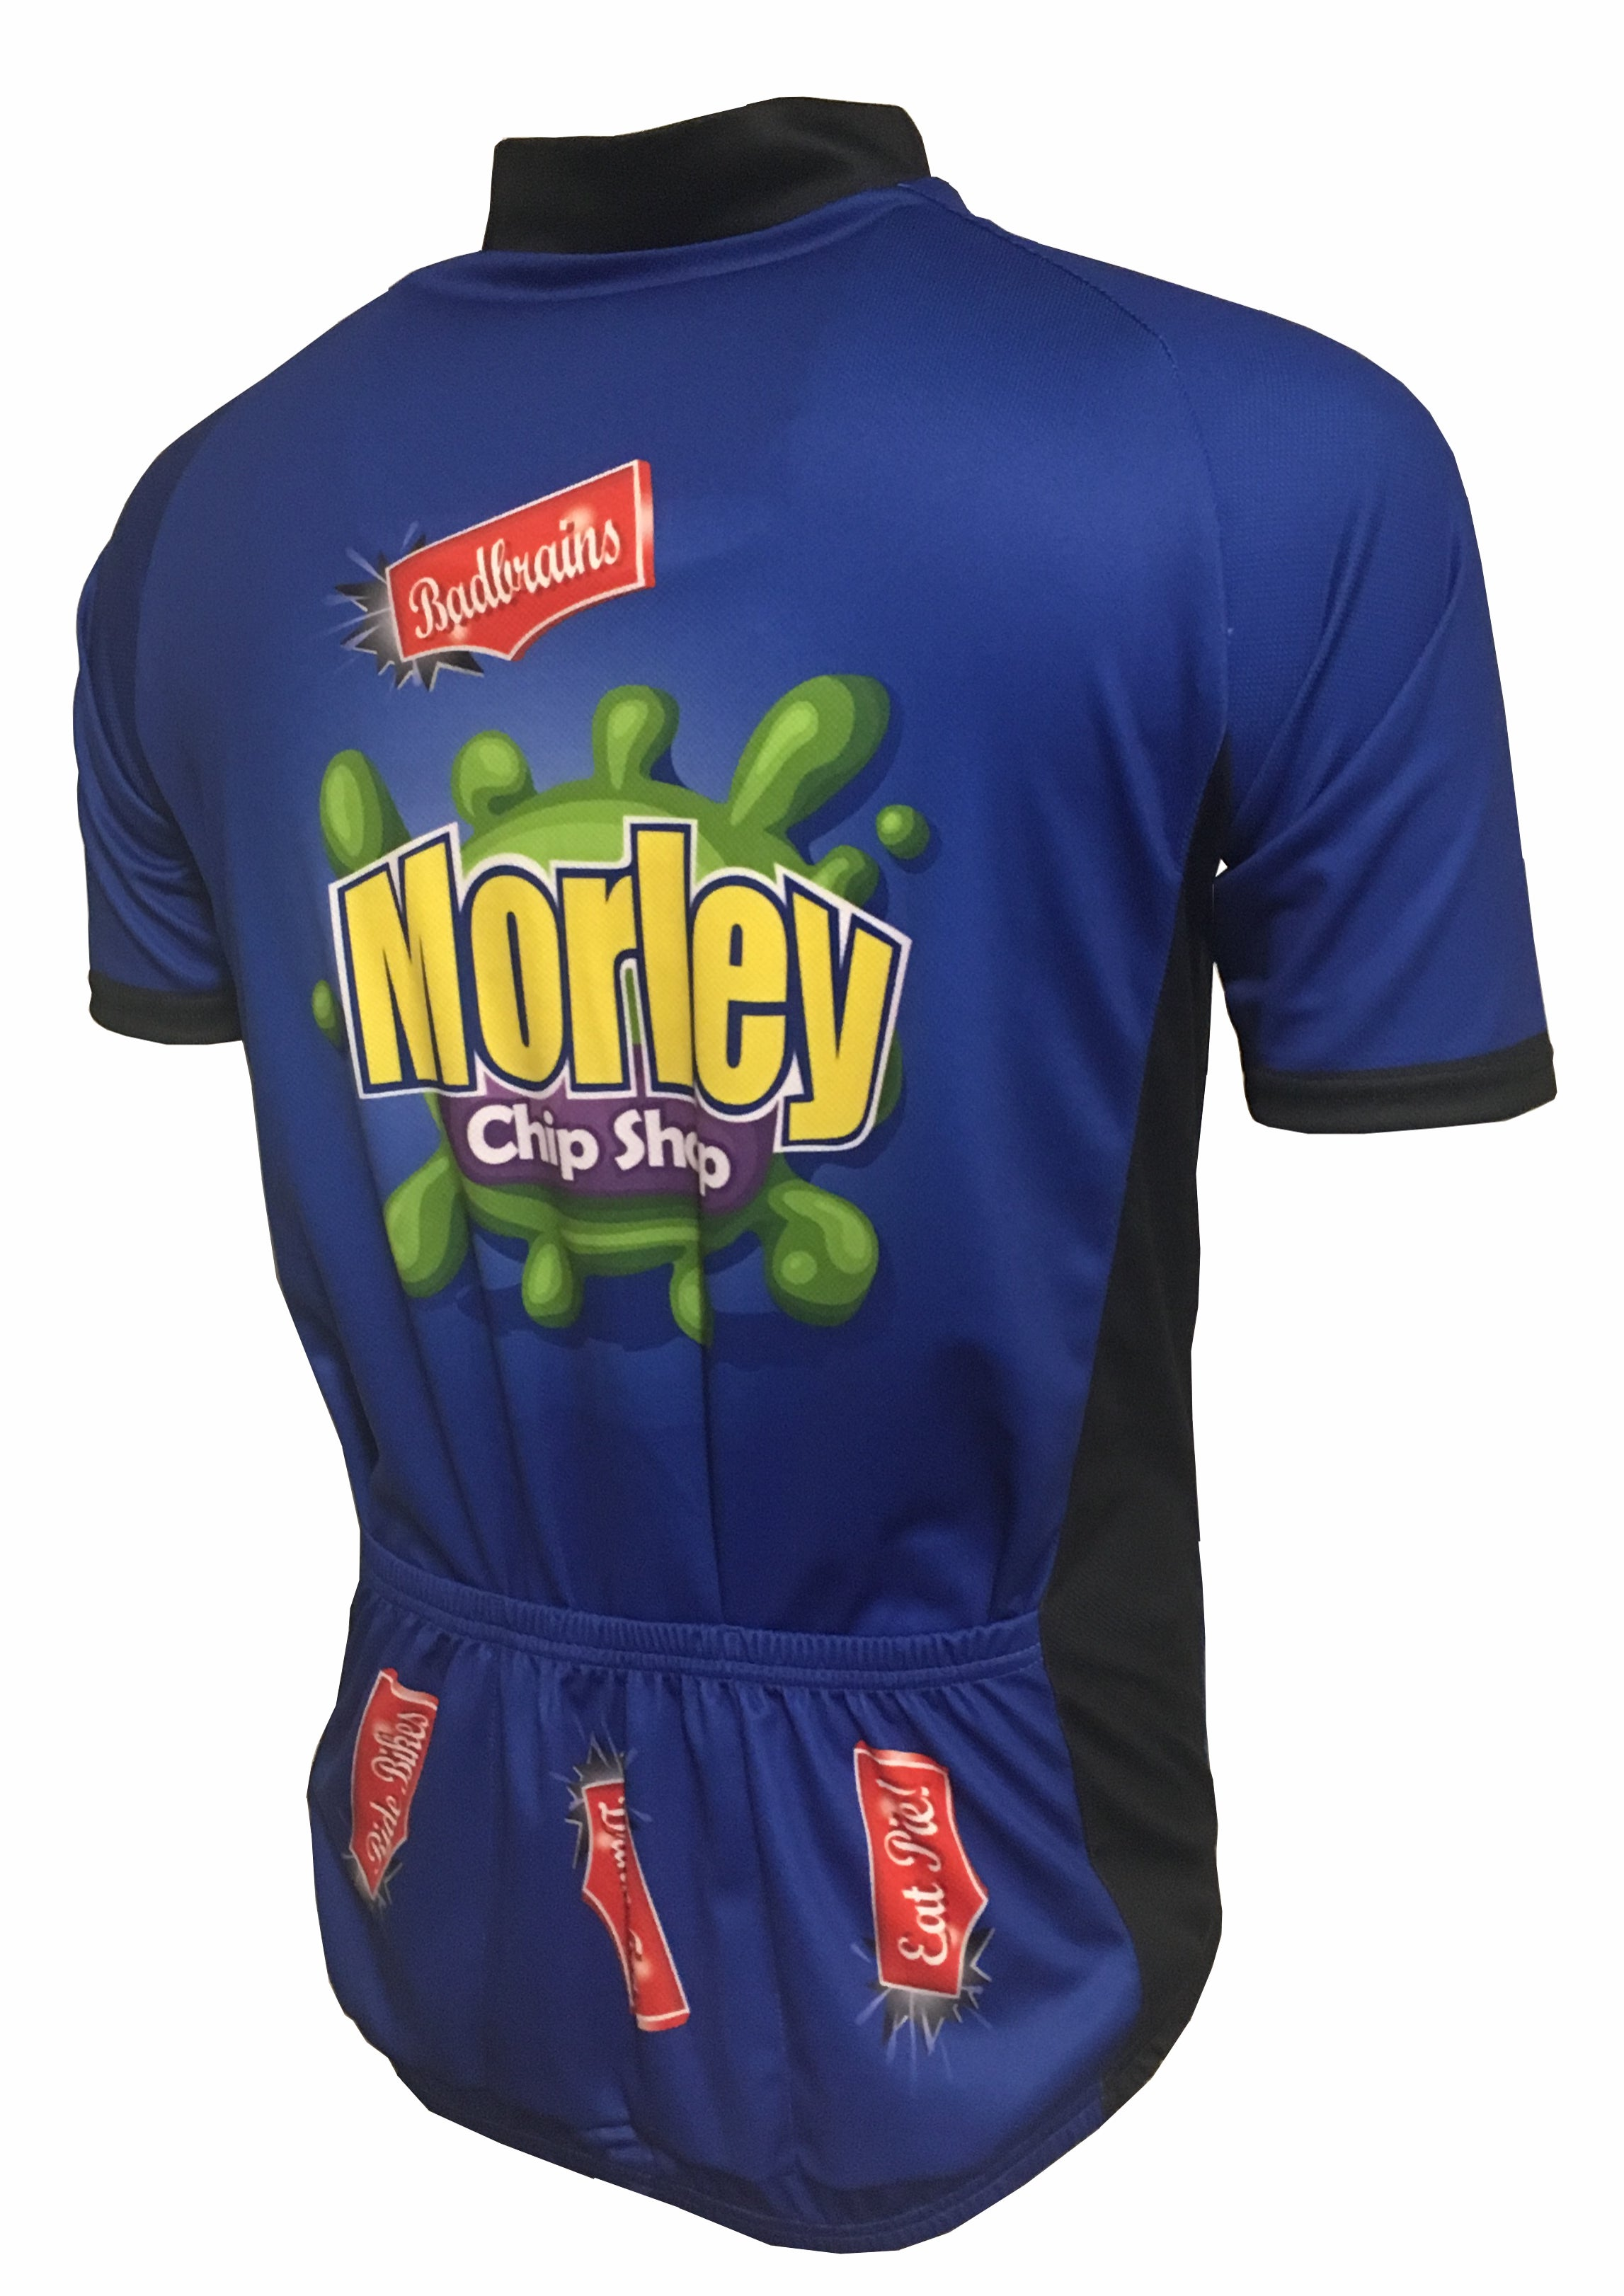 Morley Chip Shop Kids Road Cycle Jersey Back